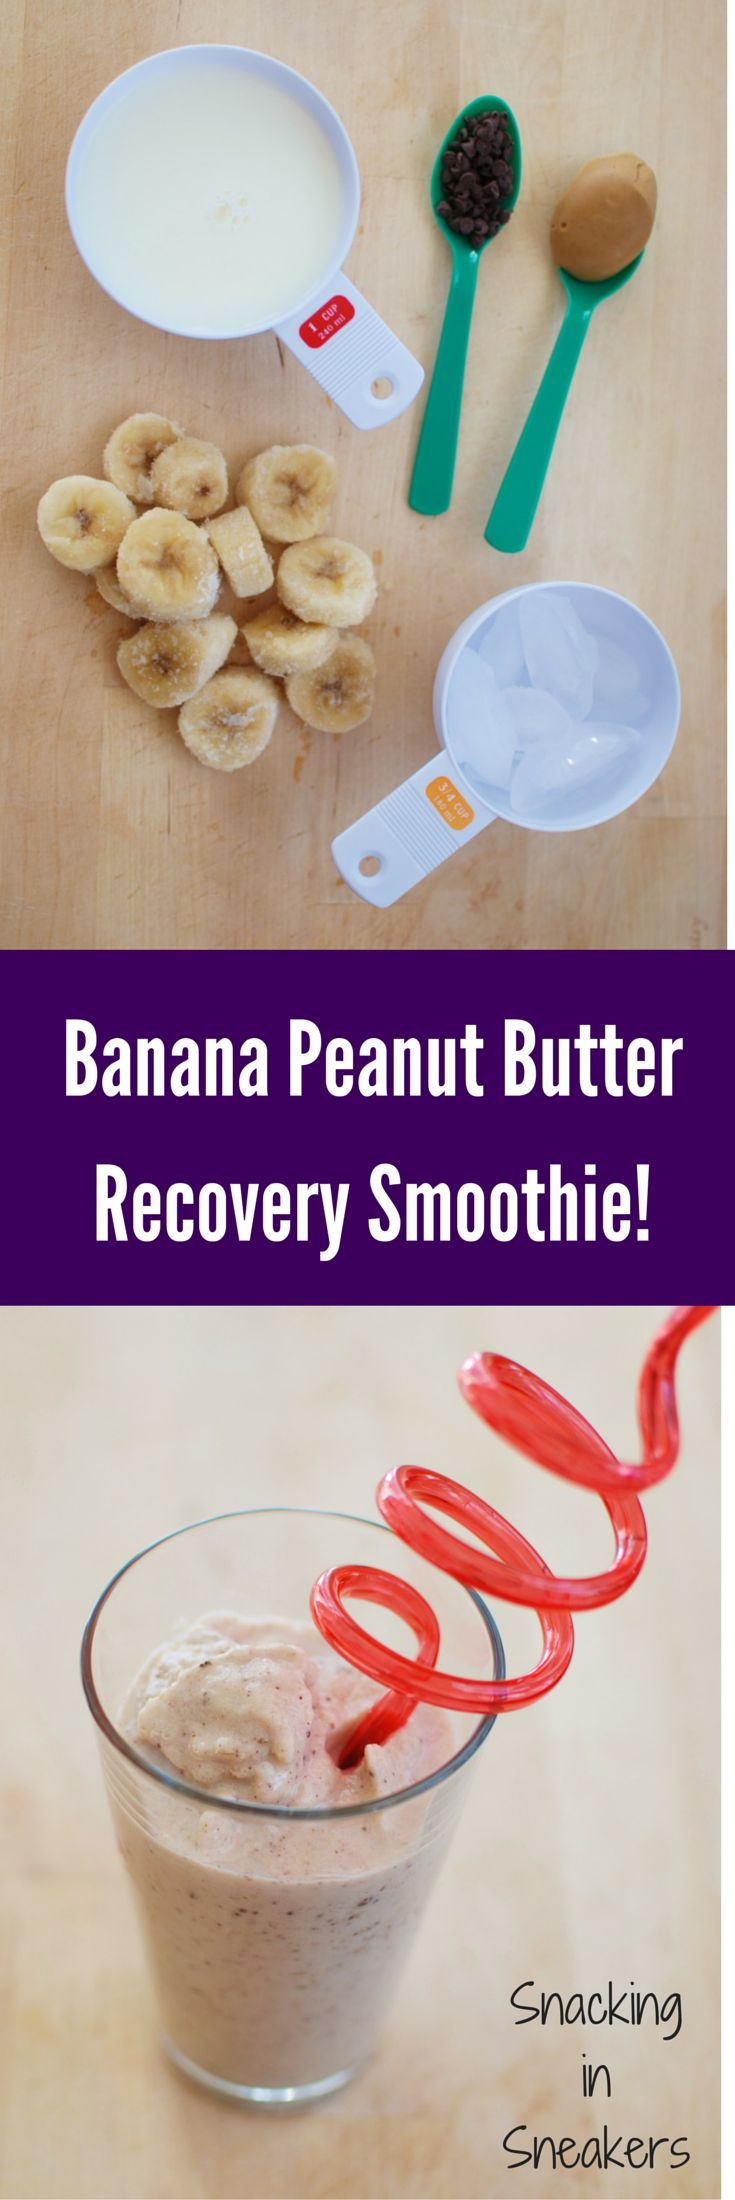 Banana peanut butter smoothie!  Perfect recovery snack after a long run or ride.  Only 5 ingredients and delicious.  Provides carbs + protein for your recovery needs.